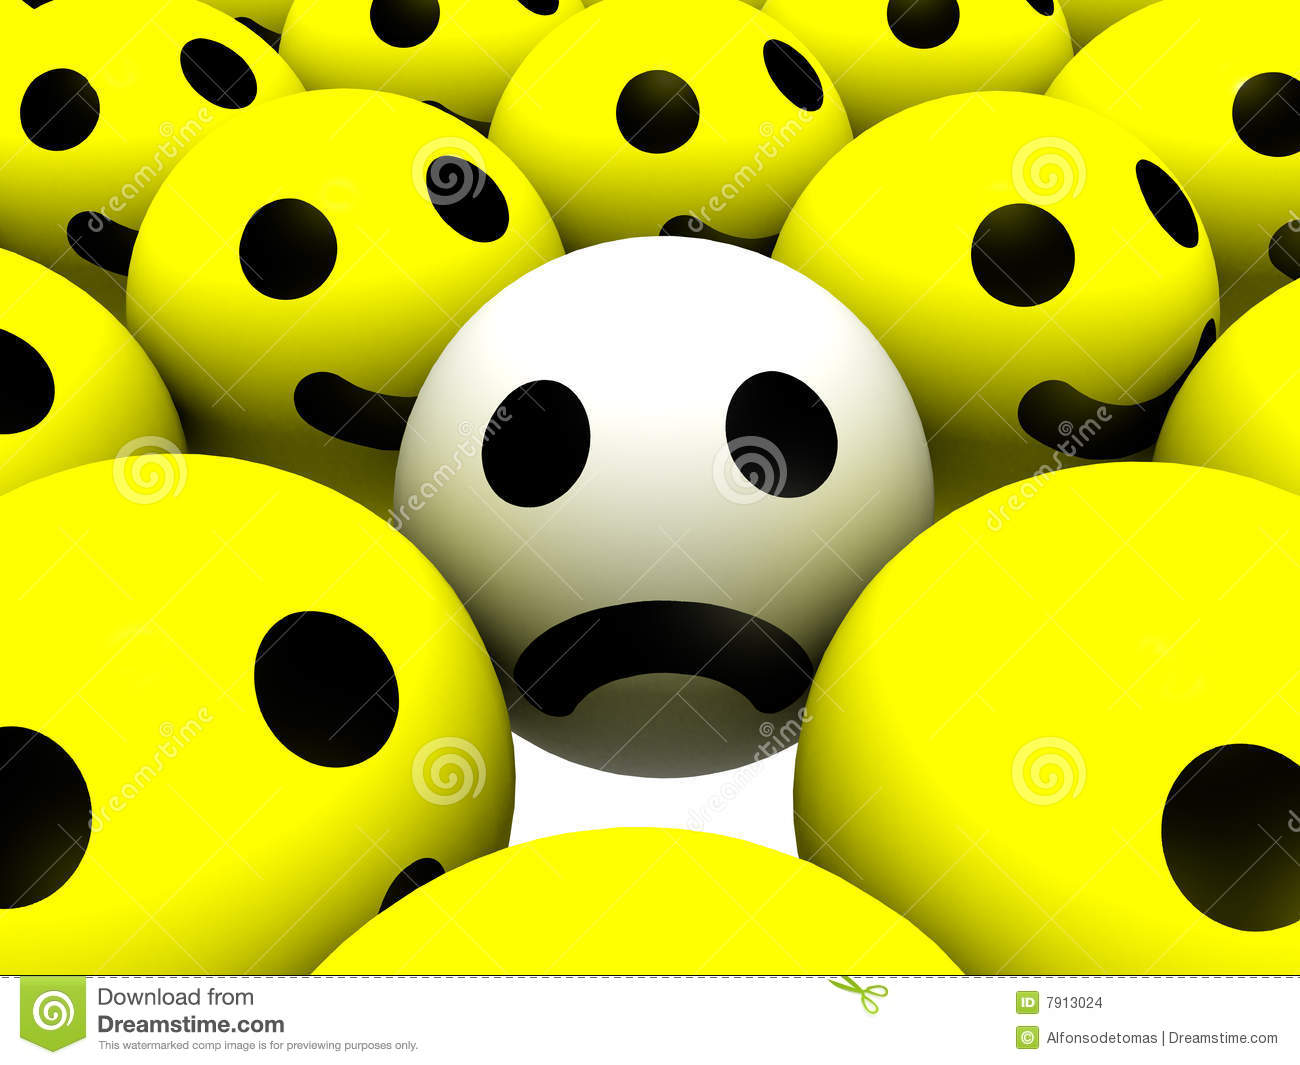 Smiley with sad face surrounded by ones with happy faces